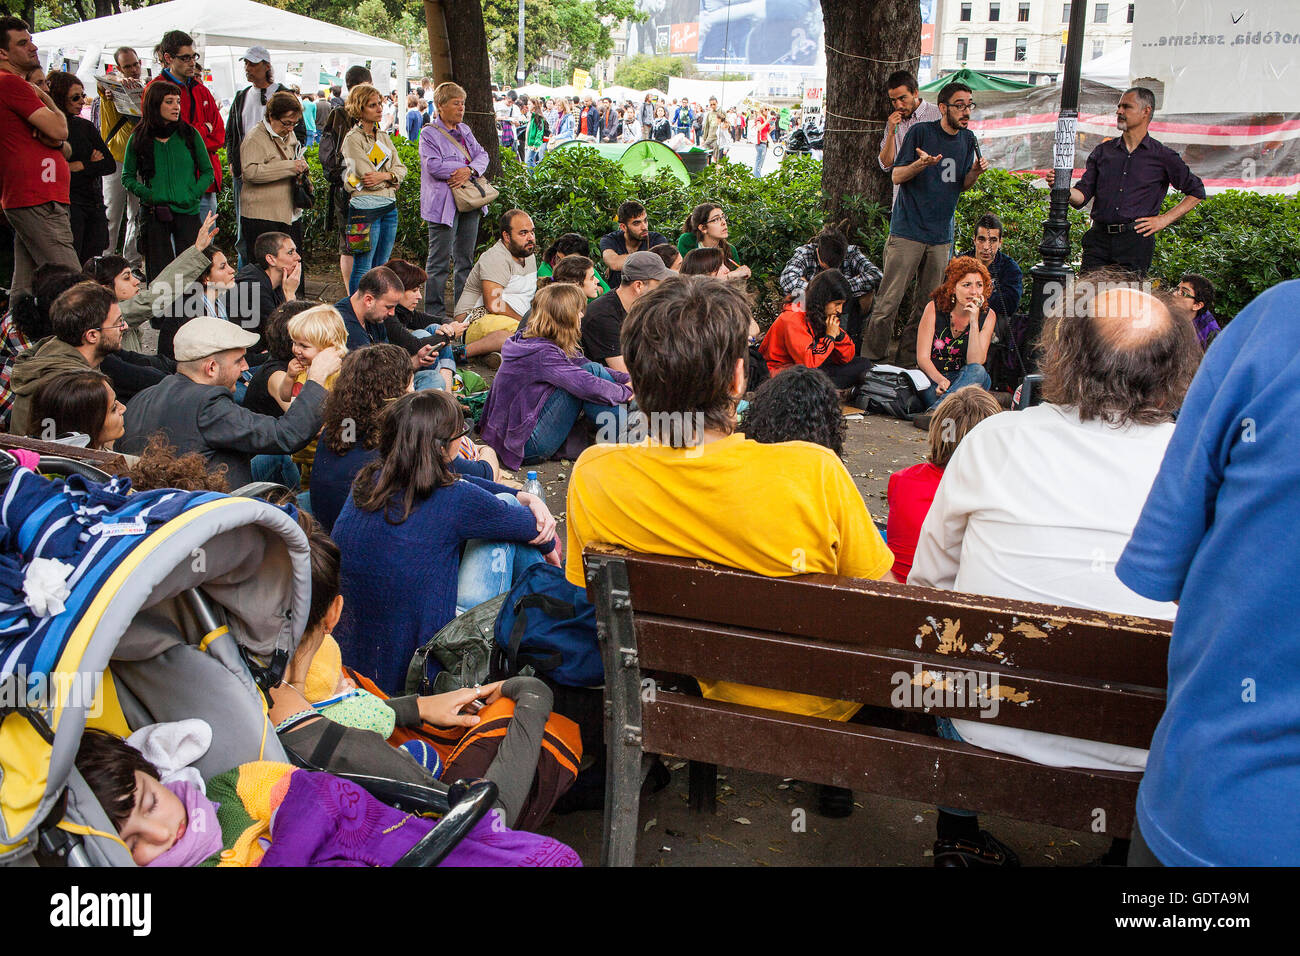 Popular assembly.Protests against the depressing social situation.Spanish Revolution 2011 .15 M y 19 J.Indignados.outraged.socia - Stock Image